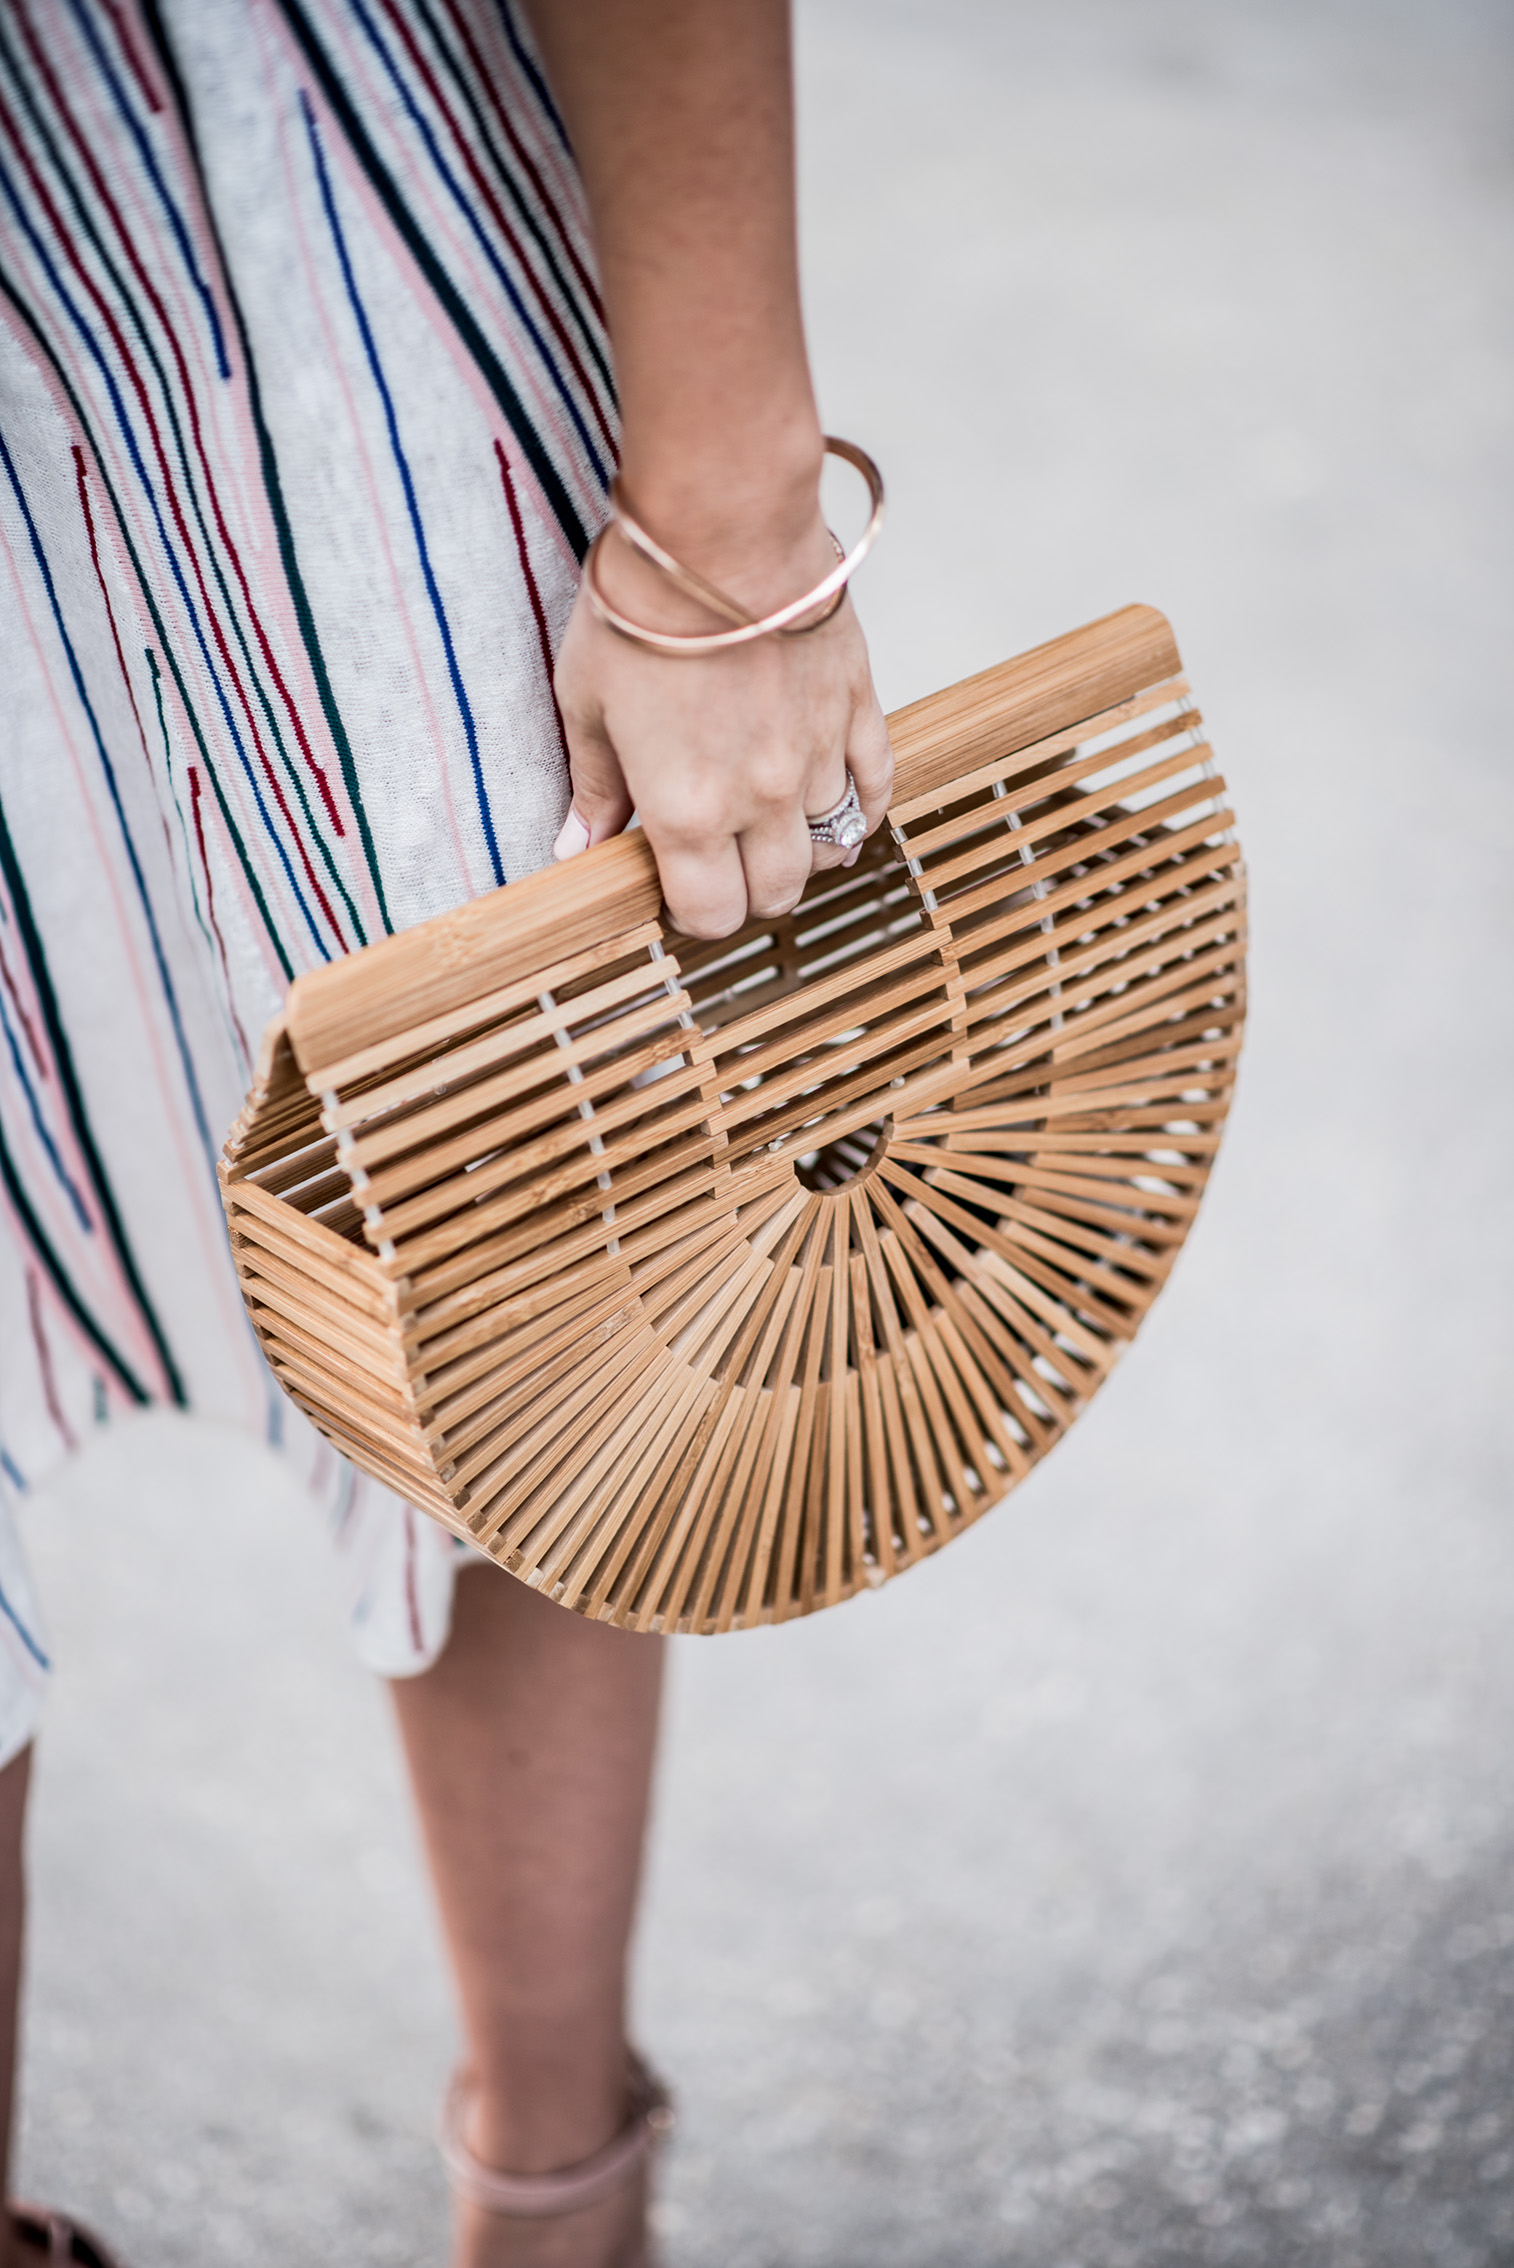 Houston fashion blogger wearing a co-ord set by ASOS and a cult gaia bag for spring | Outfit ideas for spring, matching sets, outfit ideas for wedding showers, outfit ideas for baby shower